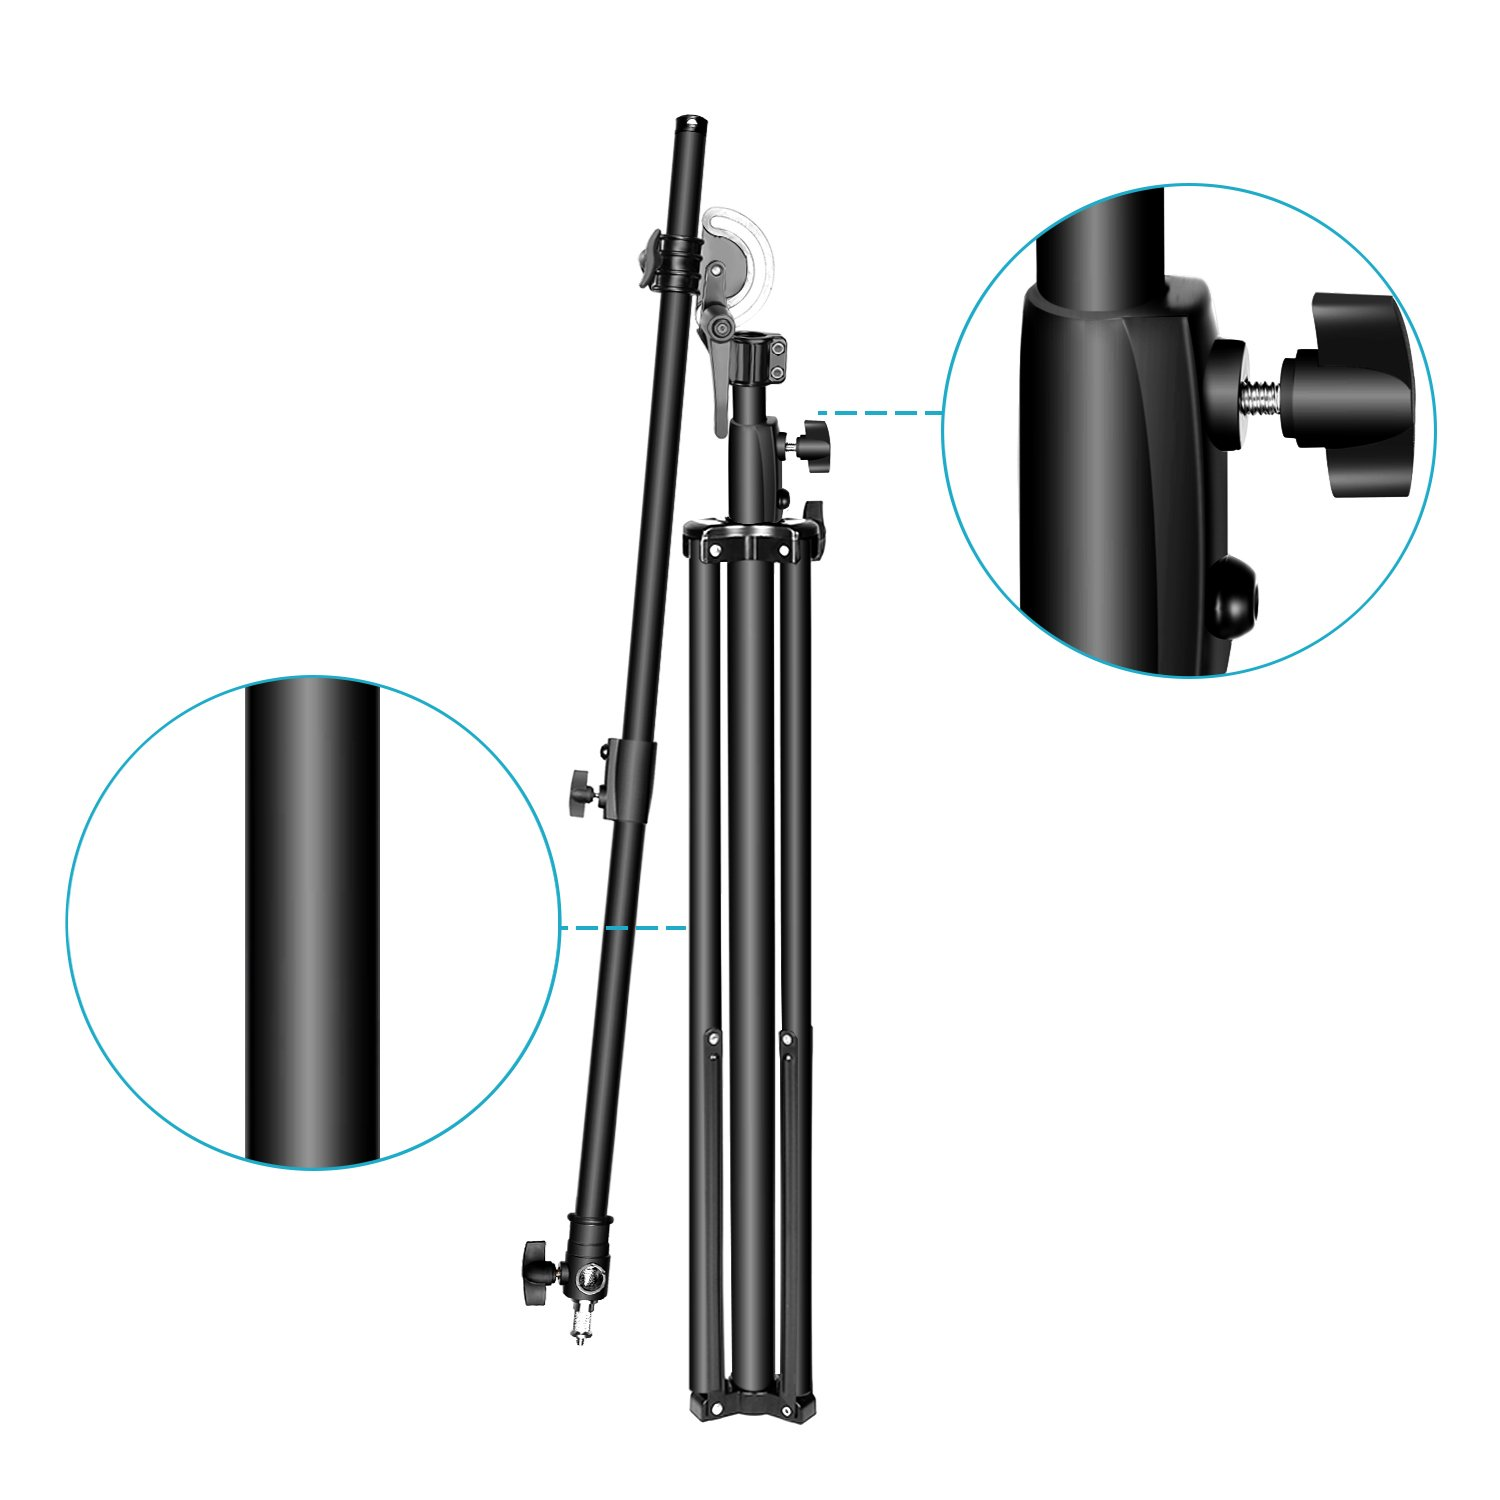 Silver Neewer Photo Studio 2-in-1 Light Stand 48.4-151.5 inches Adjustable Height with 85-inch Boom Arm and Sandbag,Aluminum Alloy,for Supporting Umbrella Softbox Flash for Portrait Video Photography